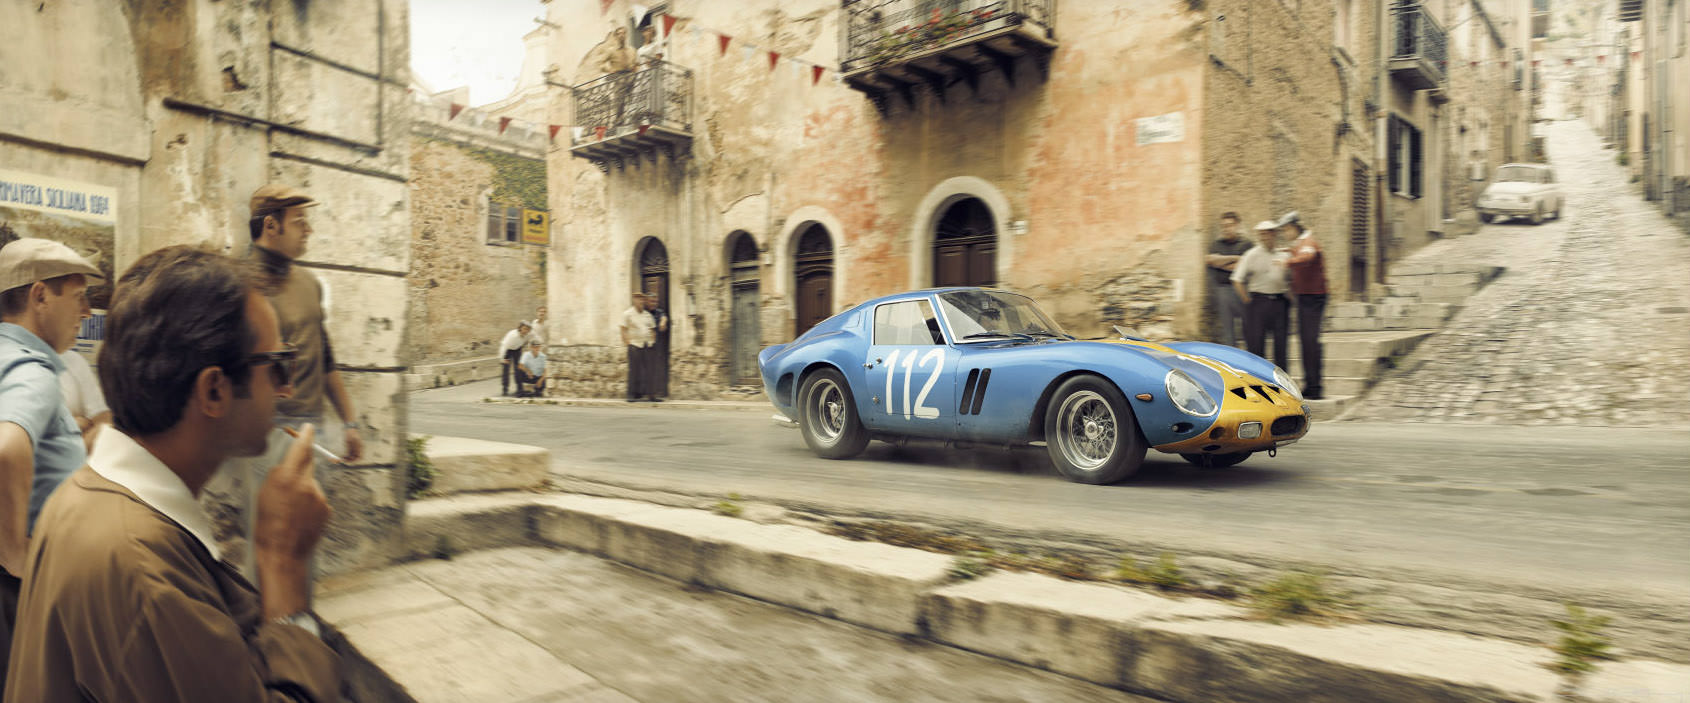 Most Expensive Car In The World >> Ferrari 250 GTO by Unique & Limited